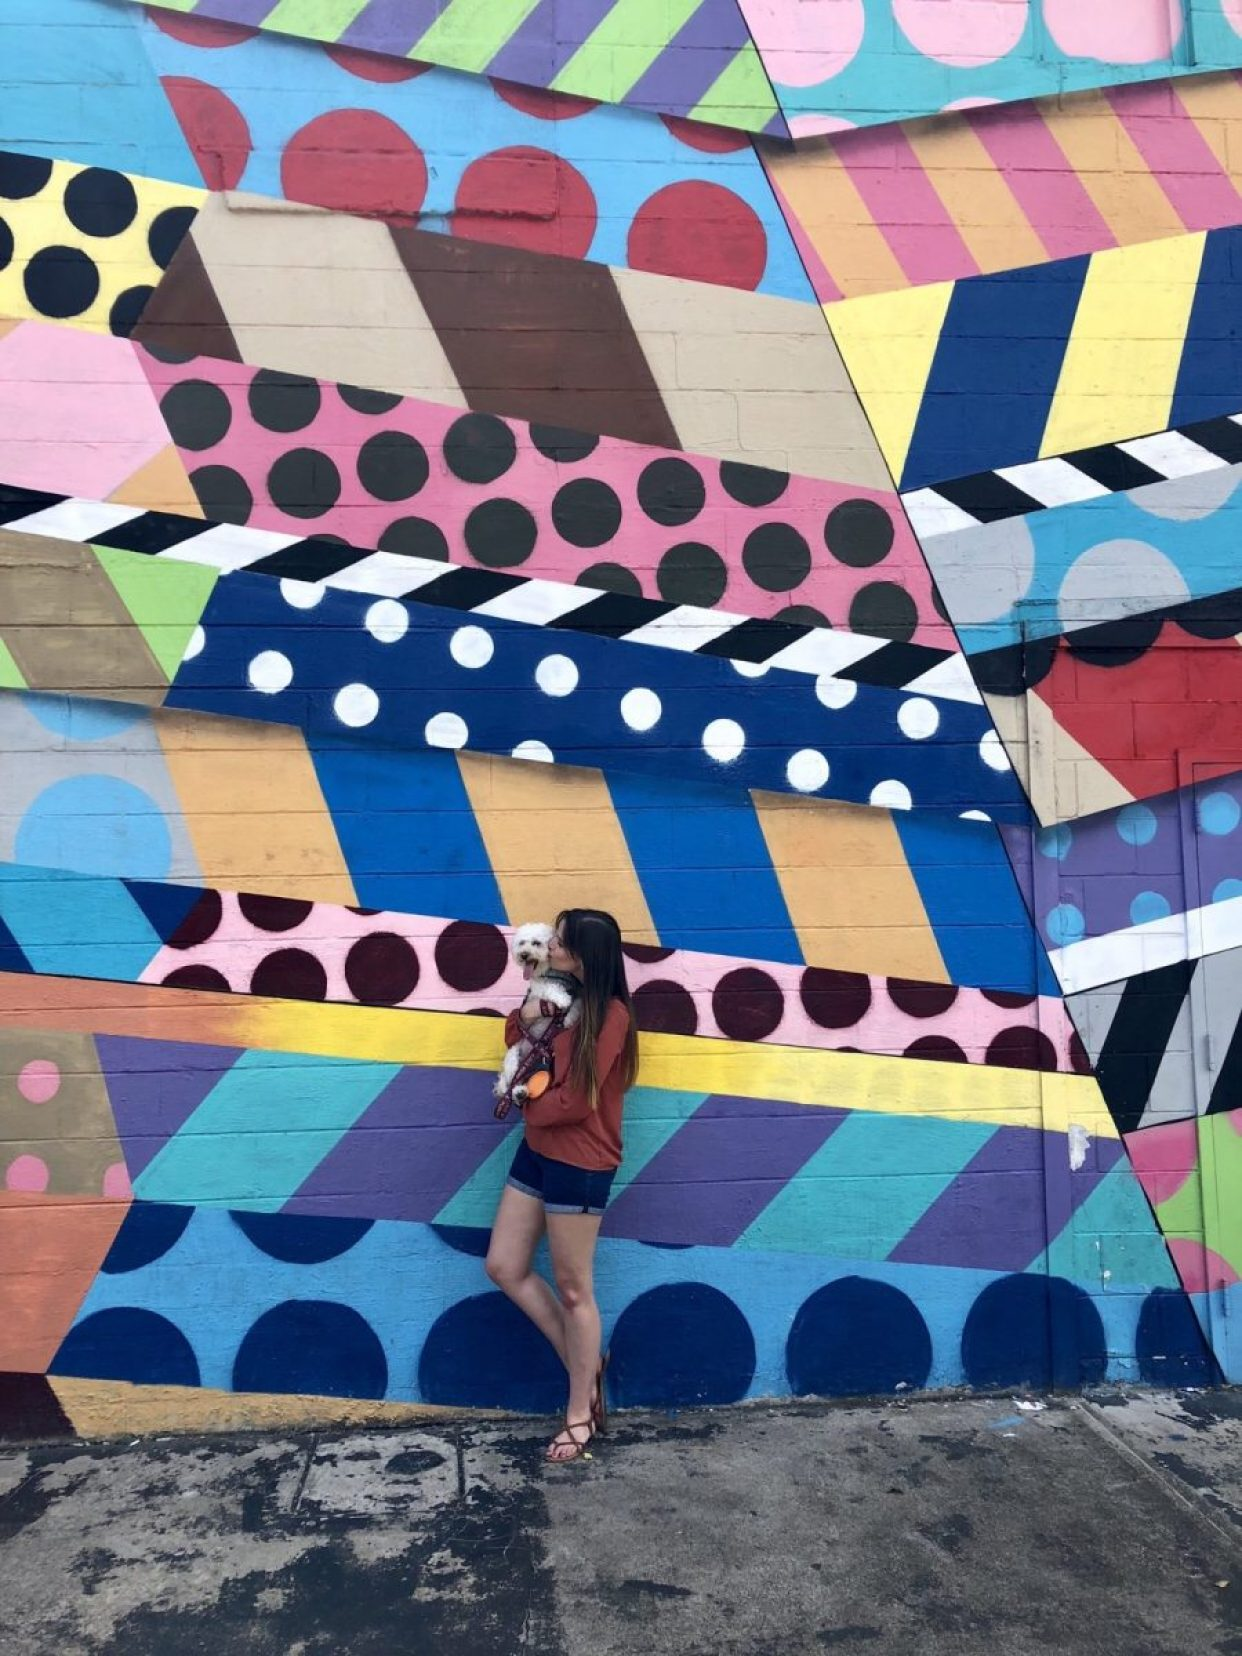 Jason Woodside Mural | The Instagrammers Guide to Nashville Murals